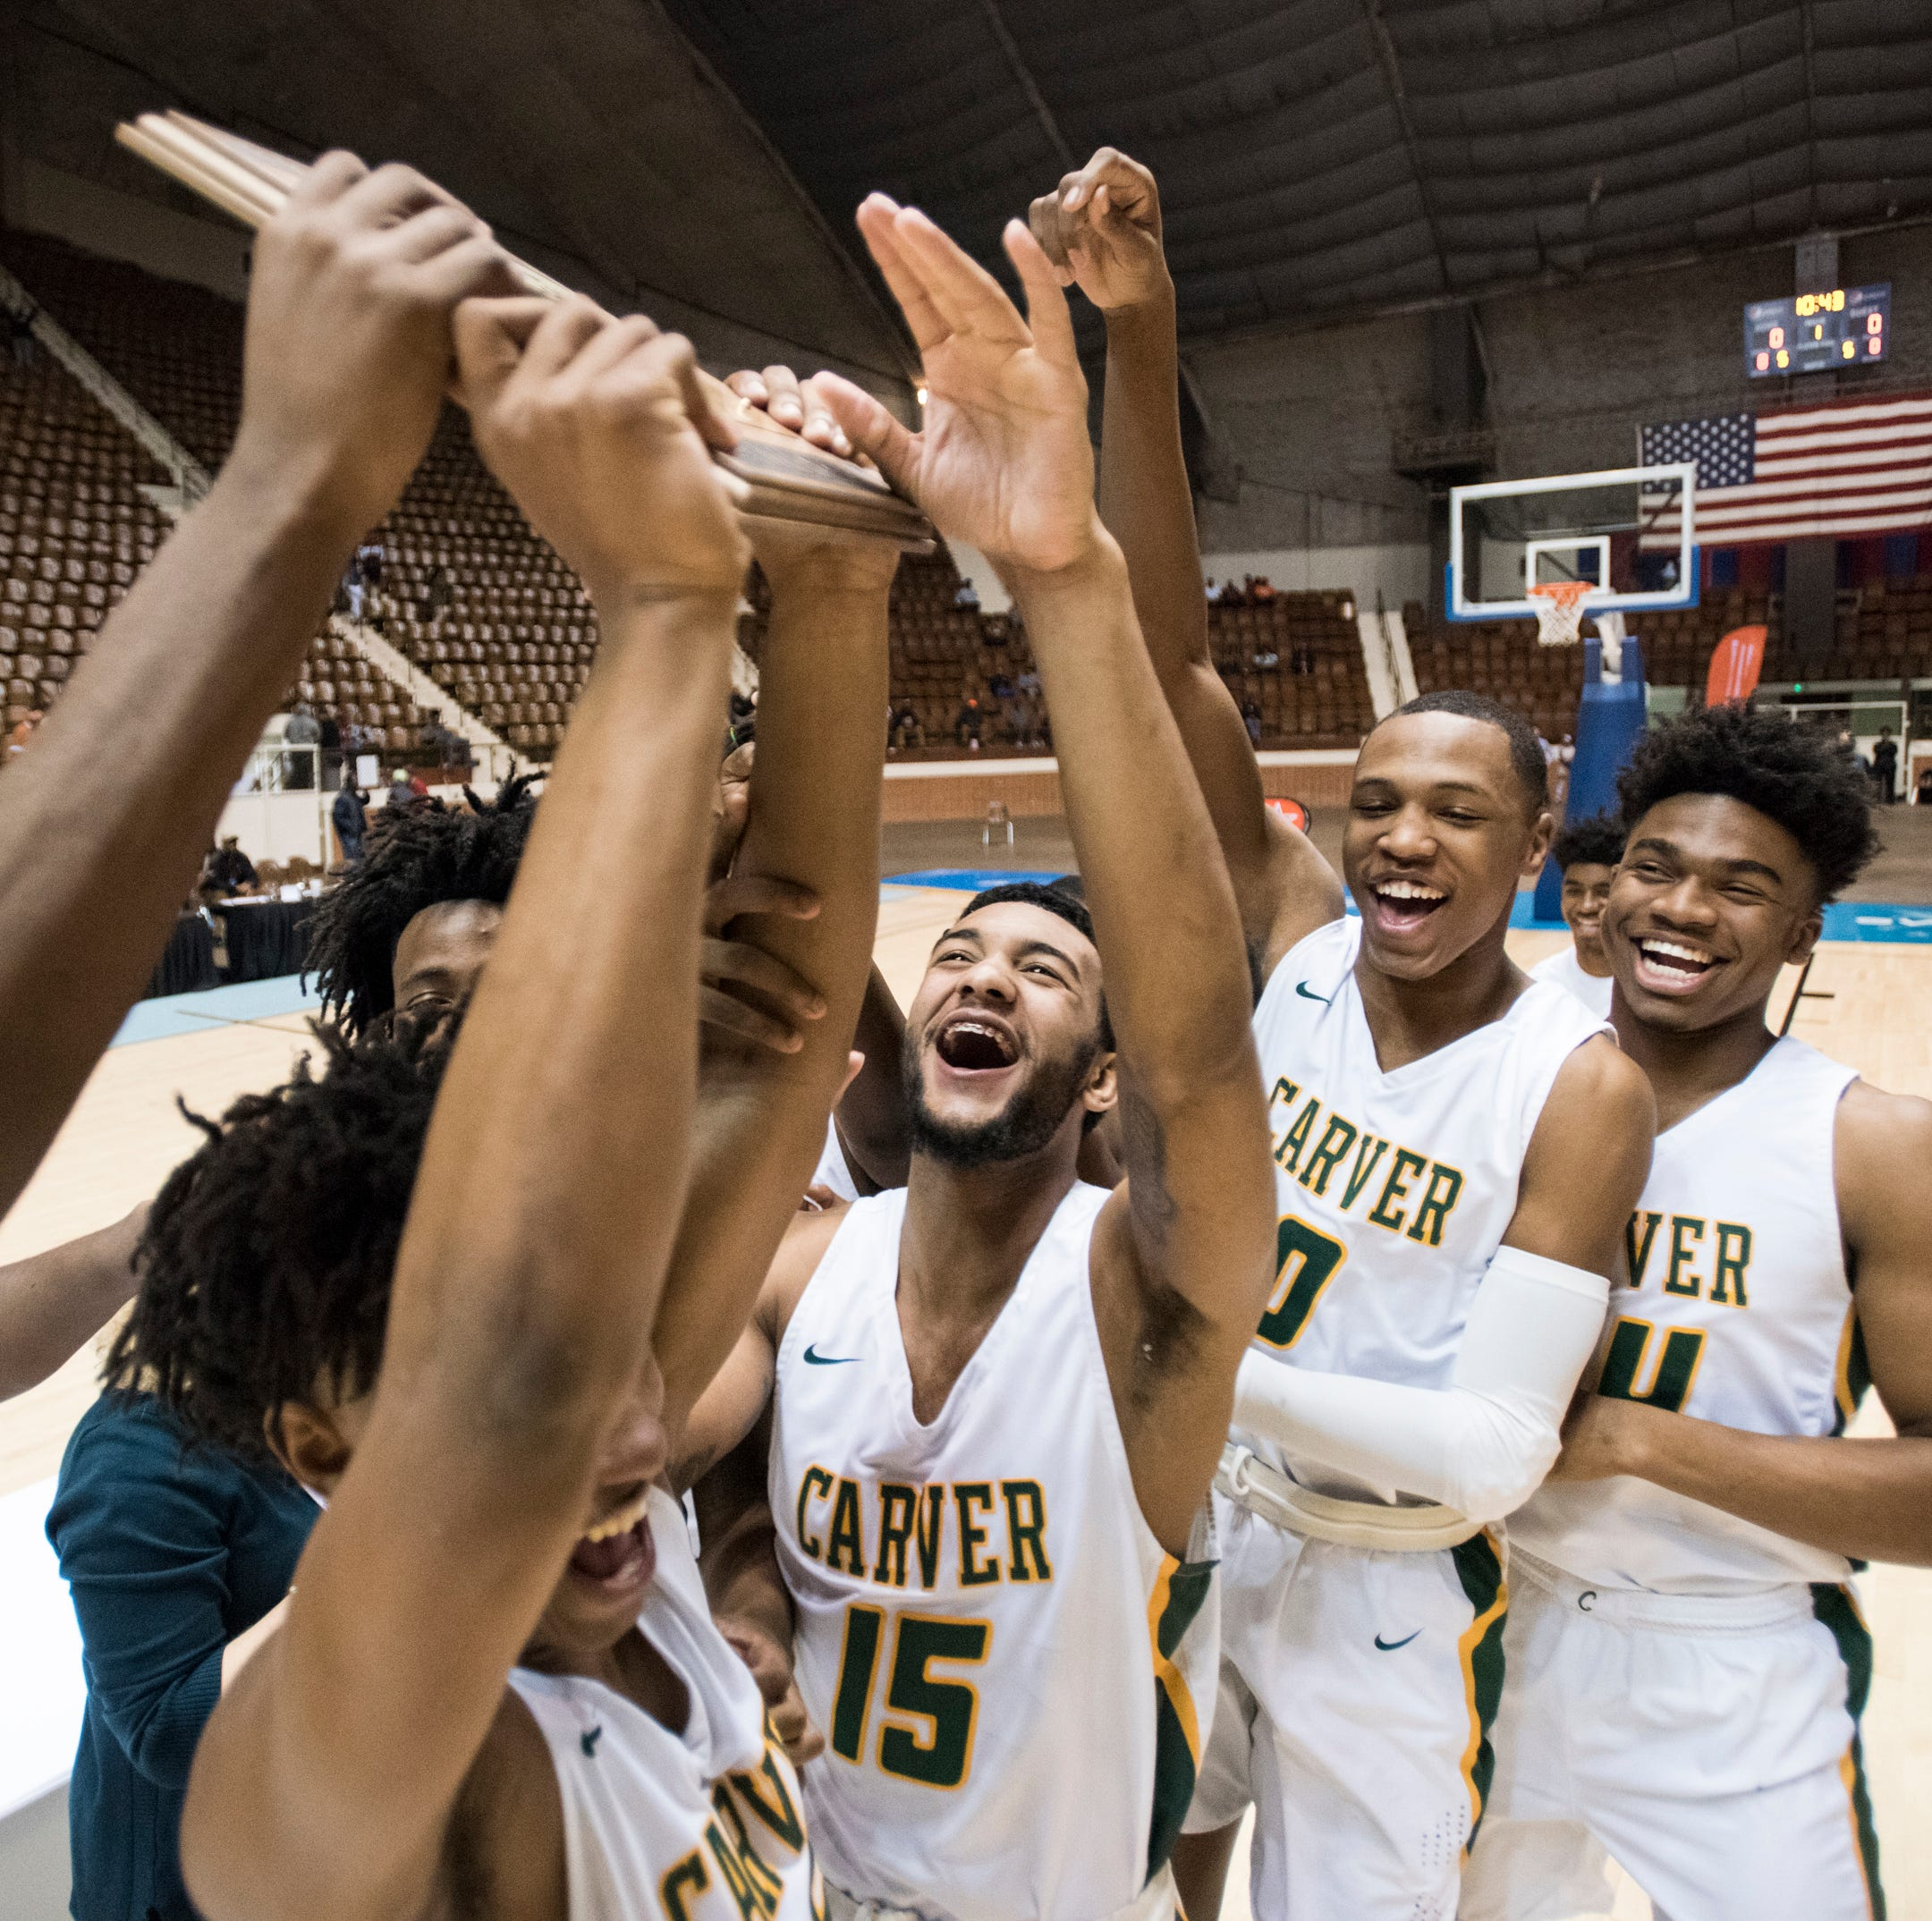 Gold standard: Carver continues regional dominance